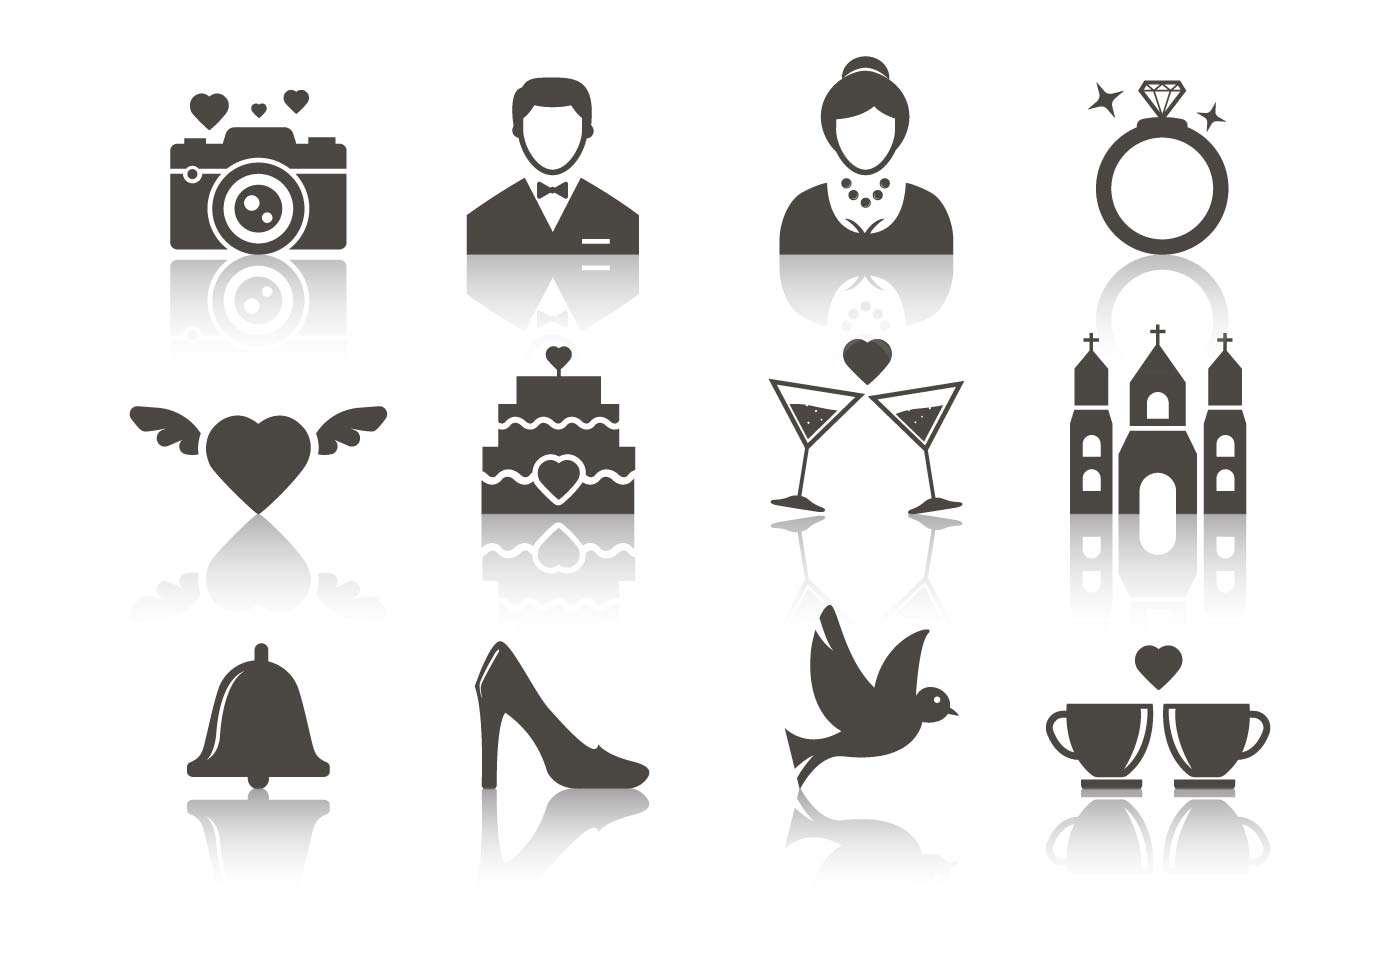 Free wedding icons vector download free vector art stock graphics free wedding icons vector download free vector art stock graphics images junglespirit Choice Image